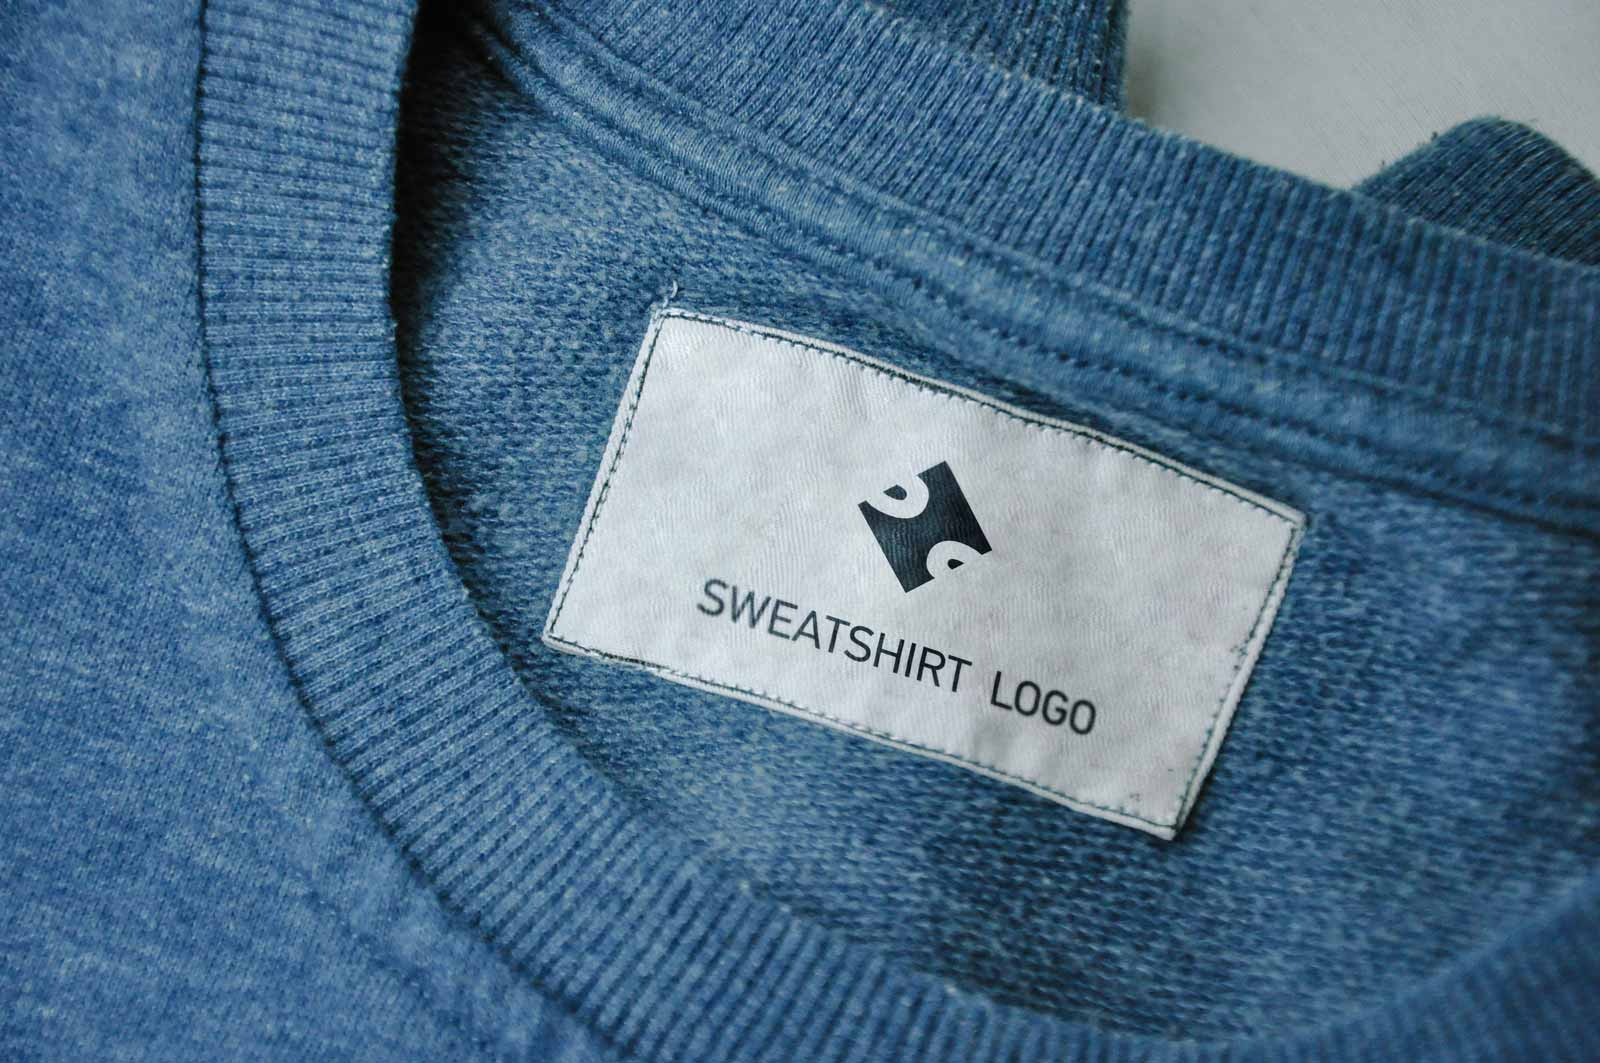 Free Clothing Sewing Jeans Amp Sweatshirt Label Tag Psd